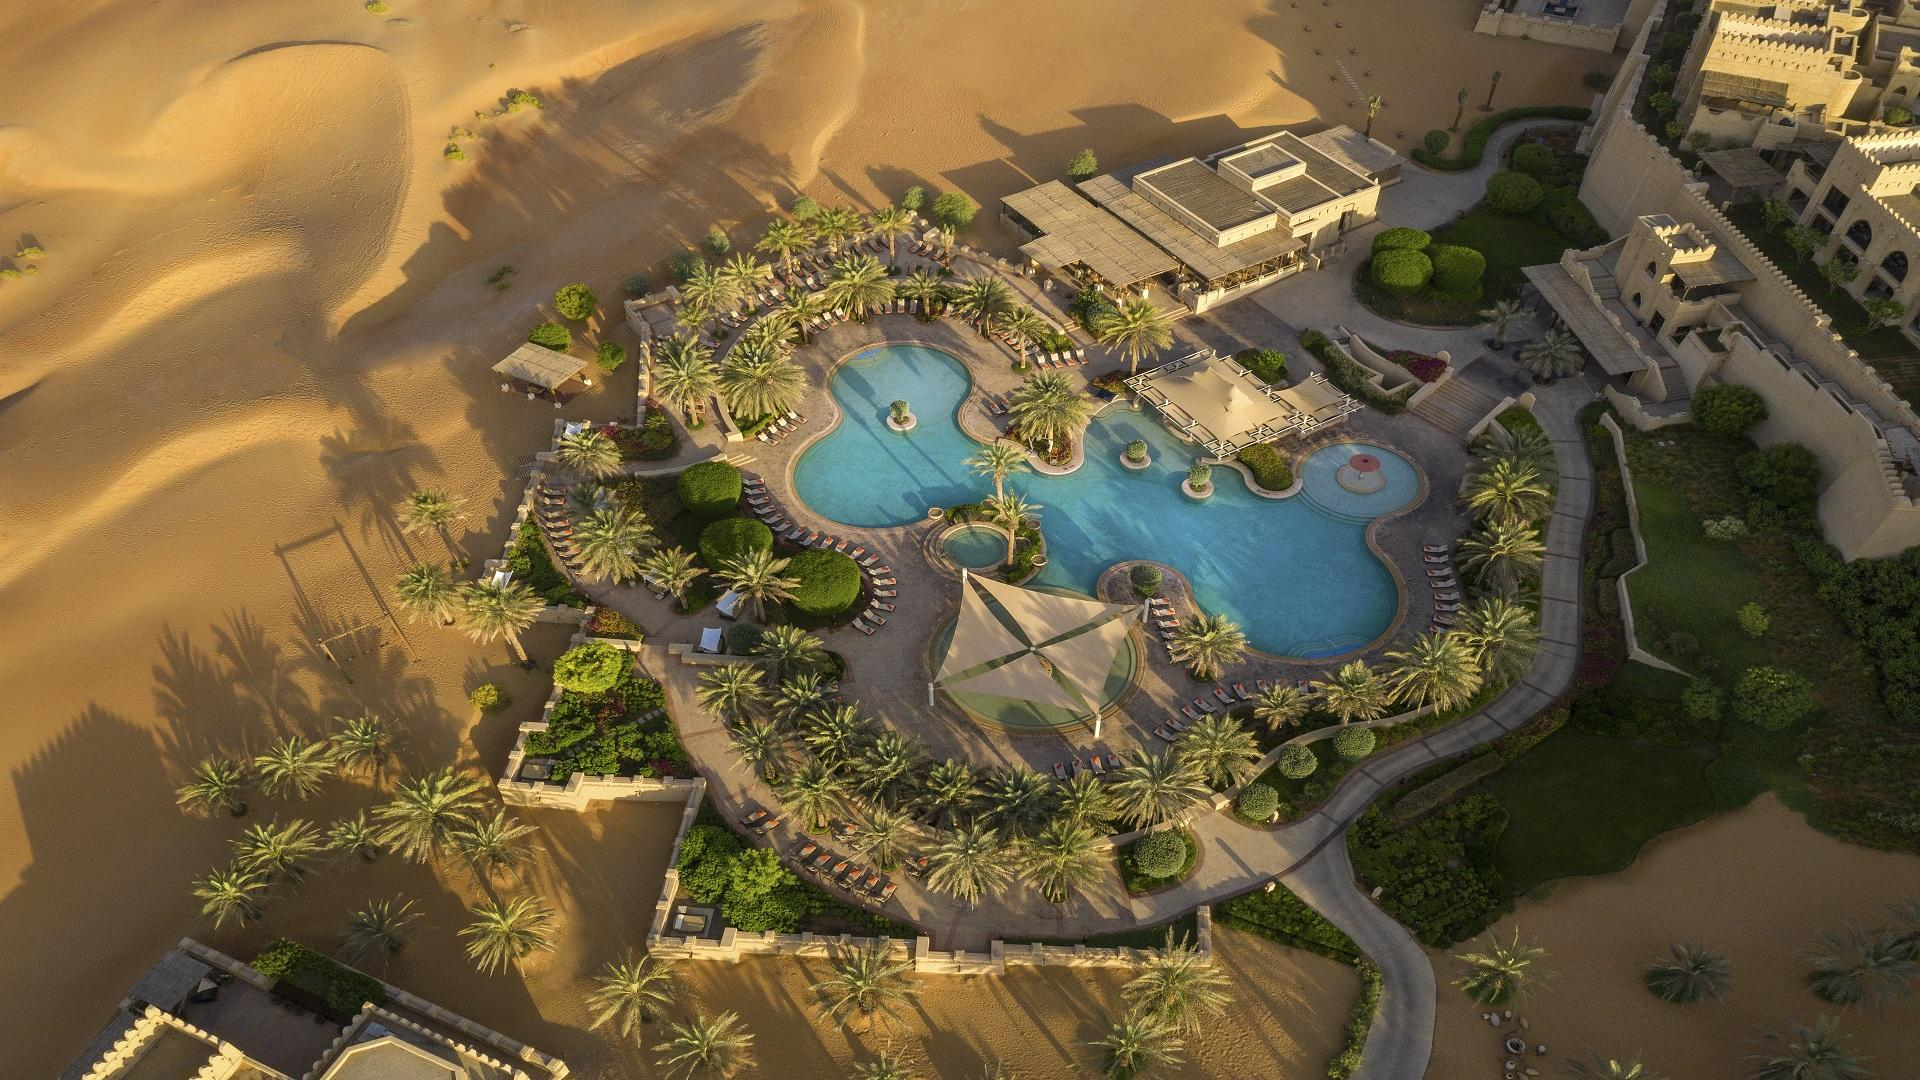 Qasr_Al_Sarab_Desert_ 度假村 安纳塔拉 _Pool_View_Exterior_Swimming 池